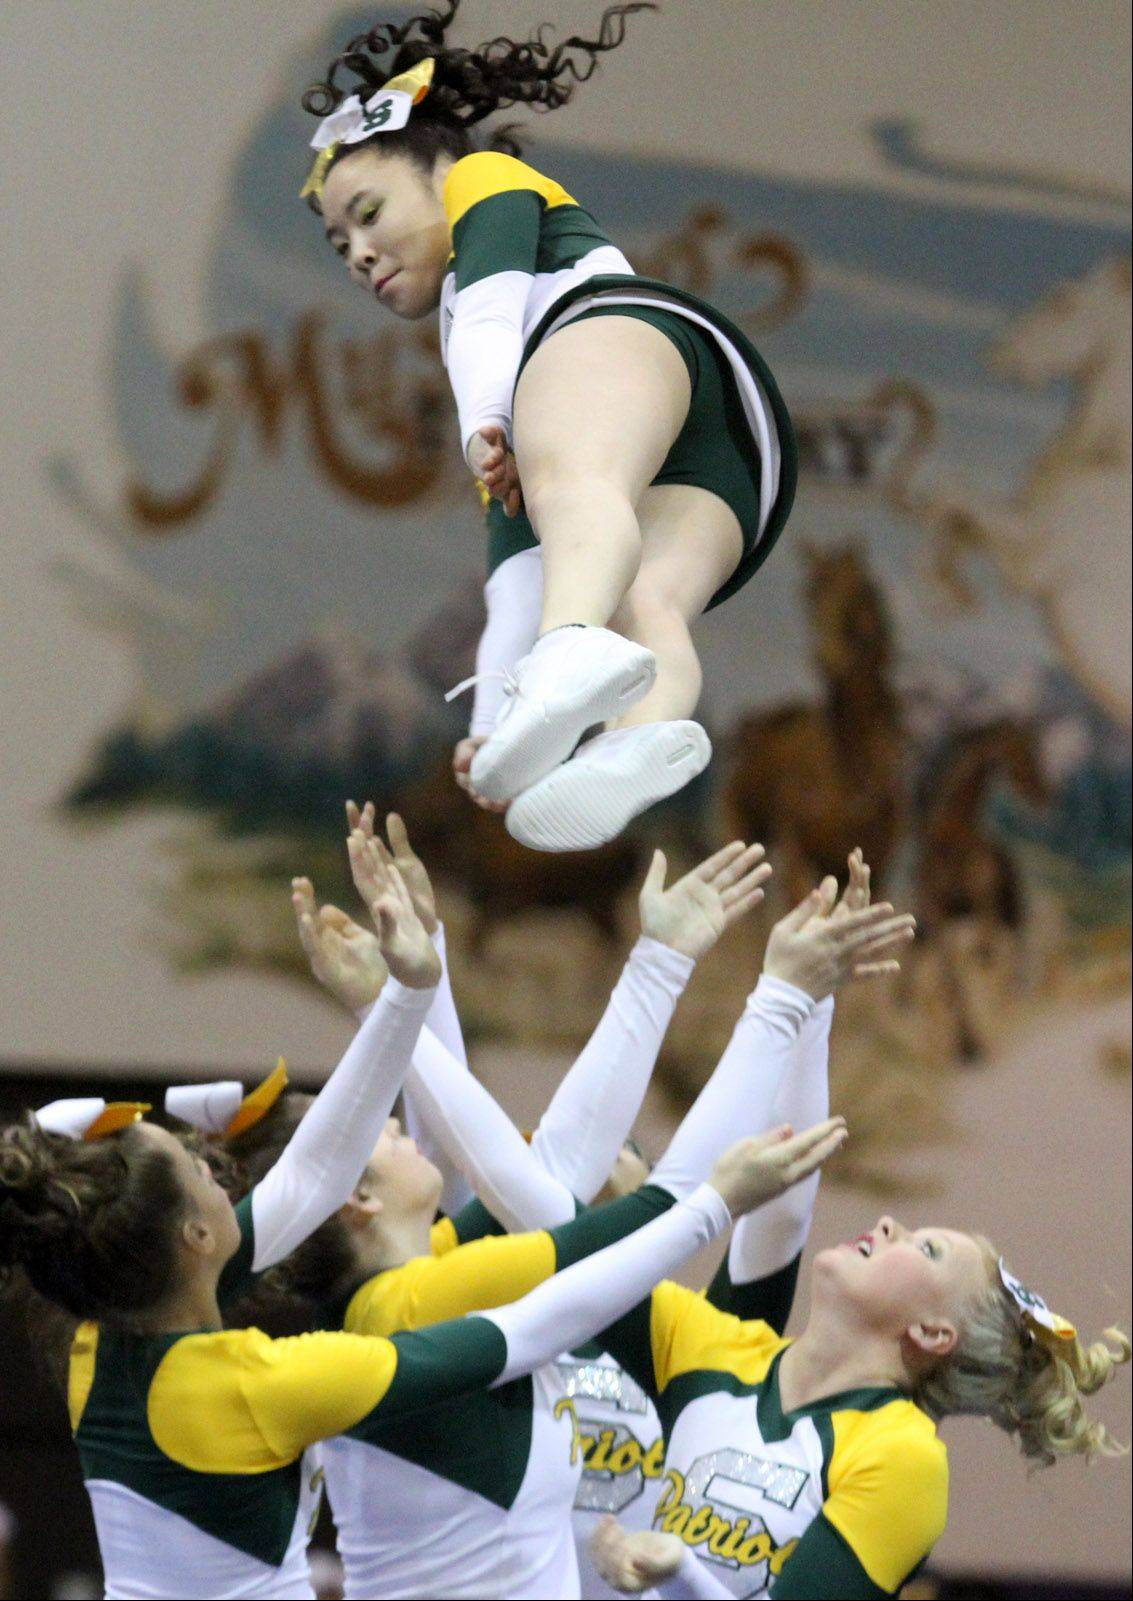 Stevenson High School performs at the IHSA competitive cheerleading sectionals in Rolling Meadows on Saturday.